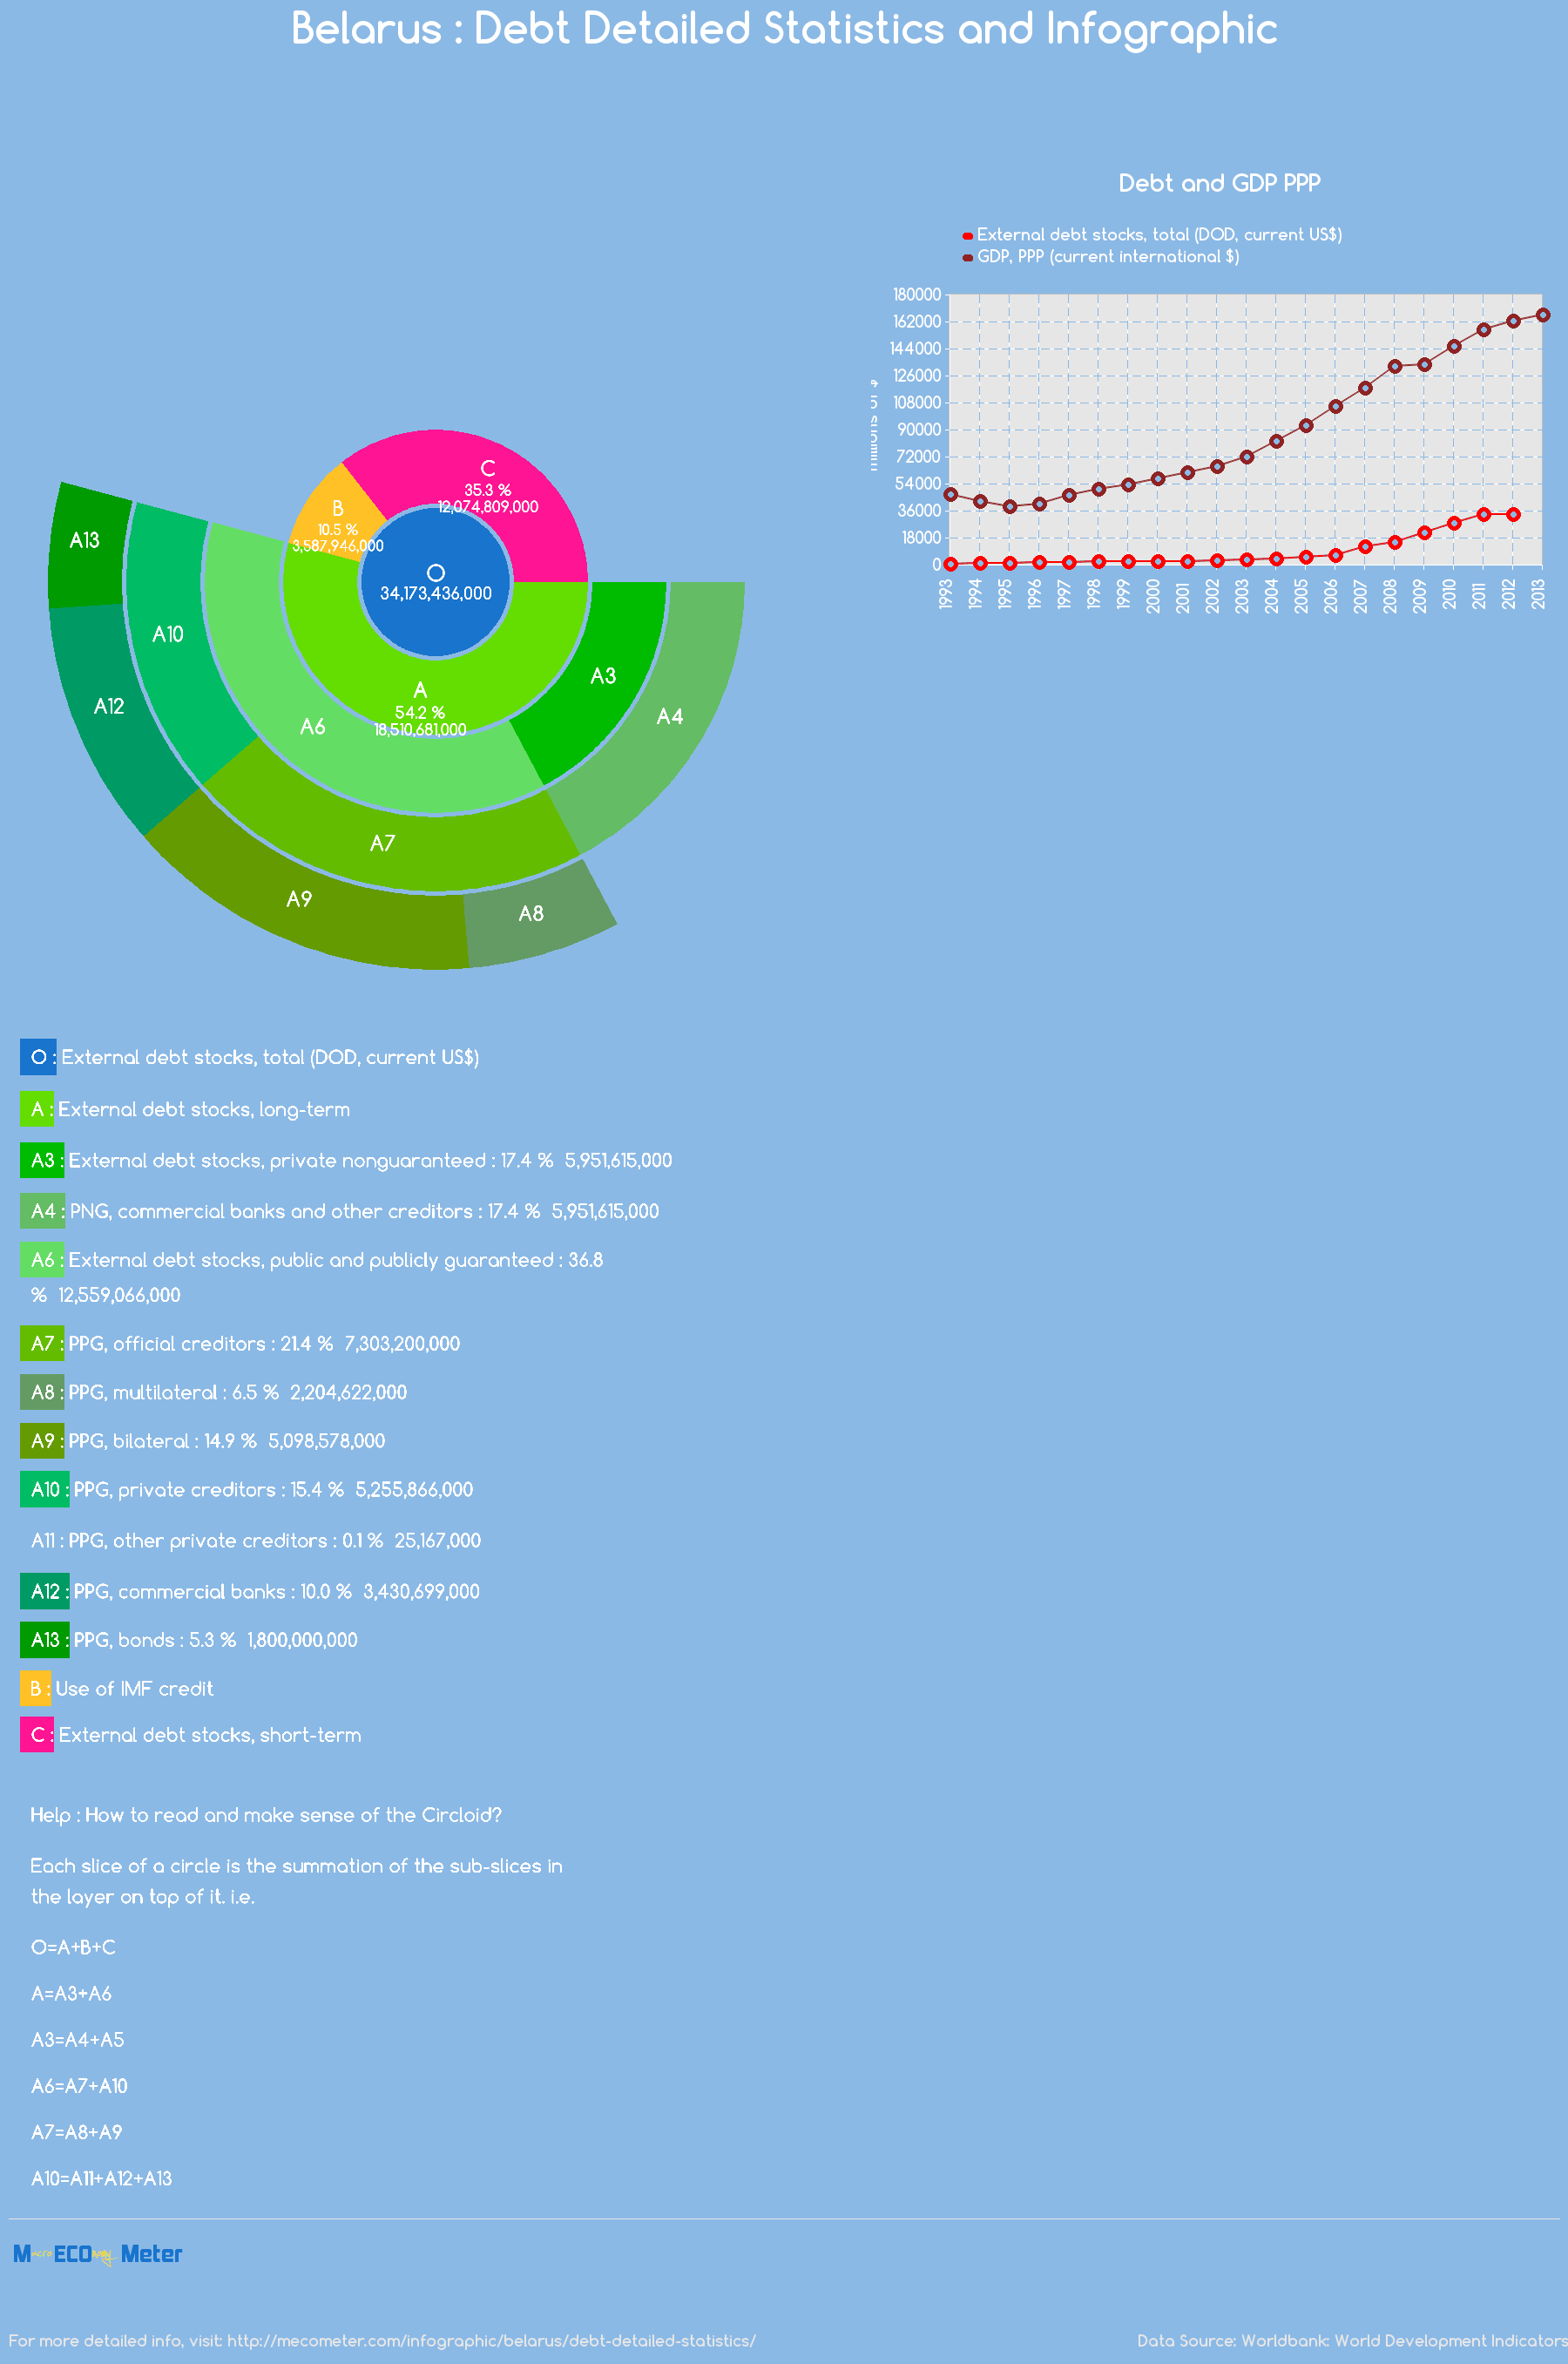 Belarus : Debt Detailed Statistics and Infographic